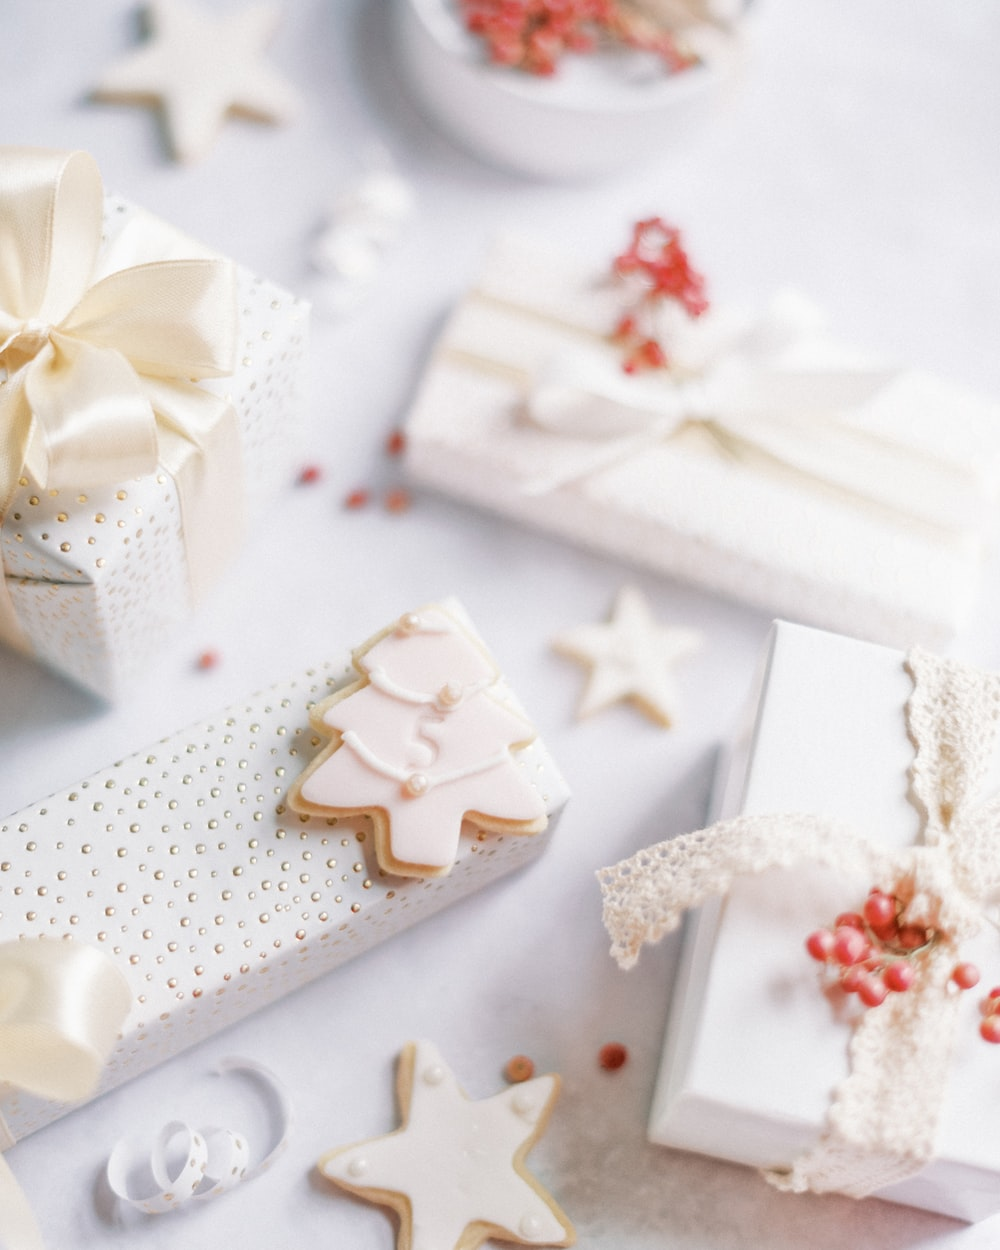 white and red floral gift box